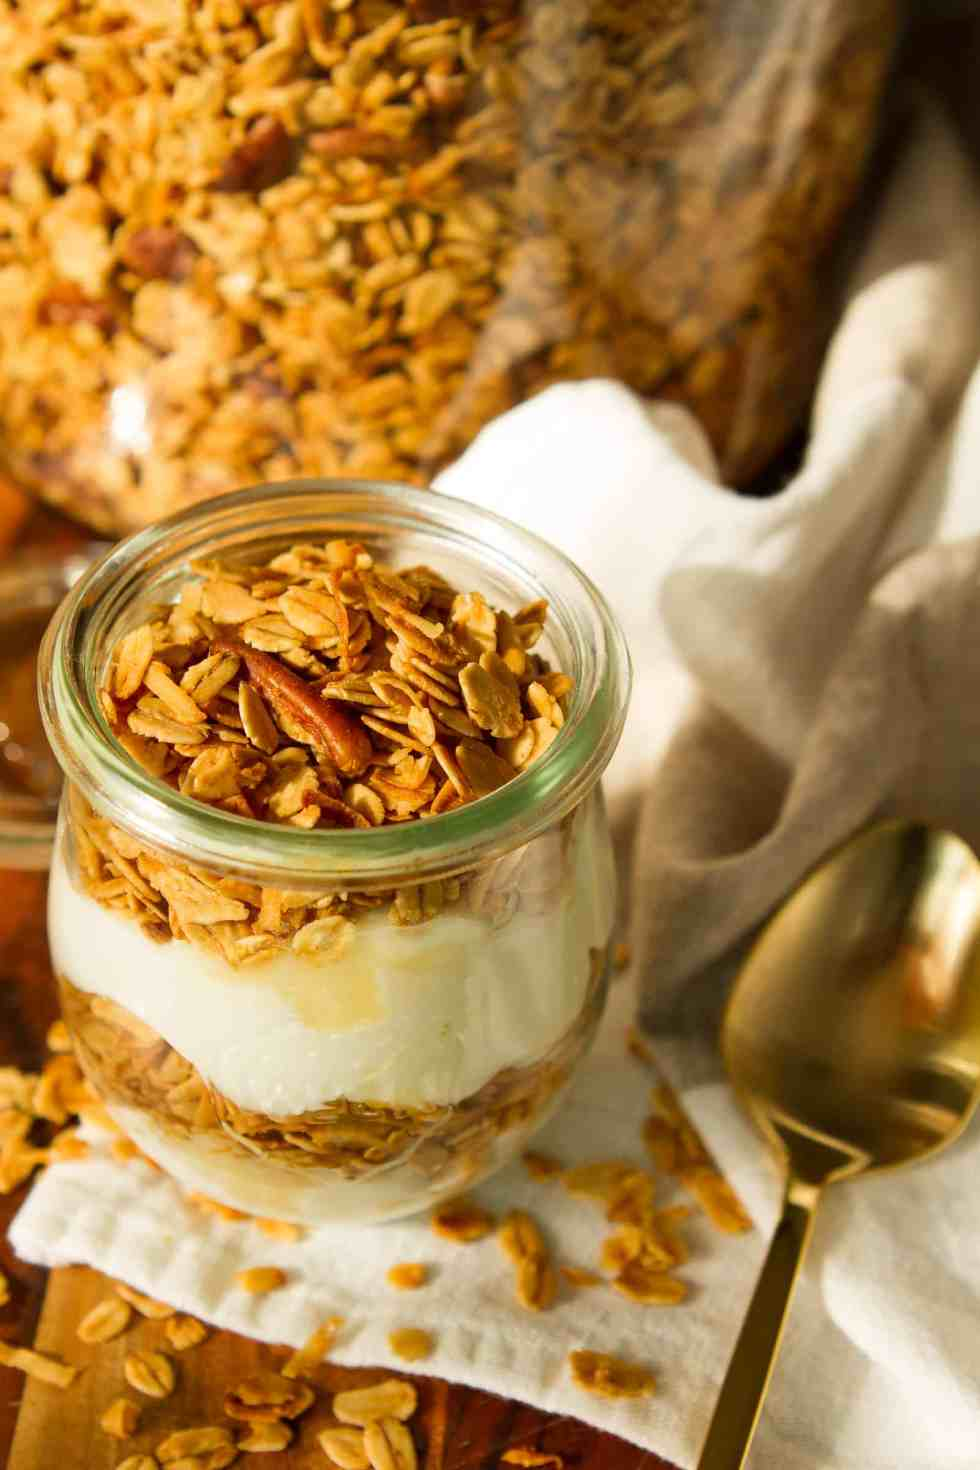 Homemade Granola Recipe -- this amazingly easy granola recipe boasts just 5 simple ingredients, each carefully chosen for maximum flavor and texture. So buttery, crunchy and utterly delicious, you won't be able to keep your hands off of it! | via @unsophisticook on unsophisticook.com